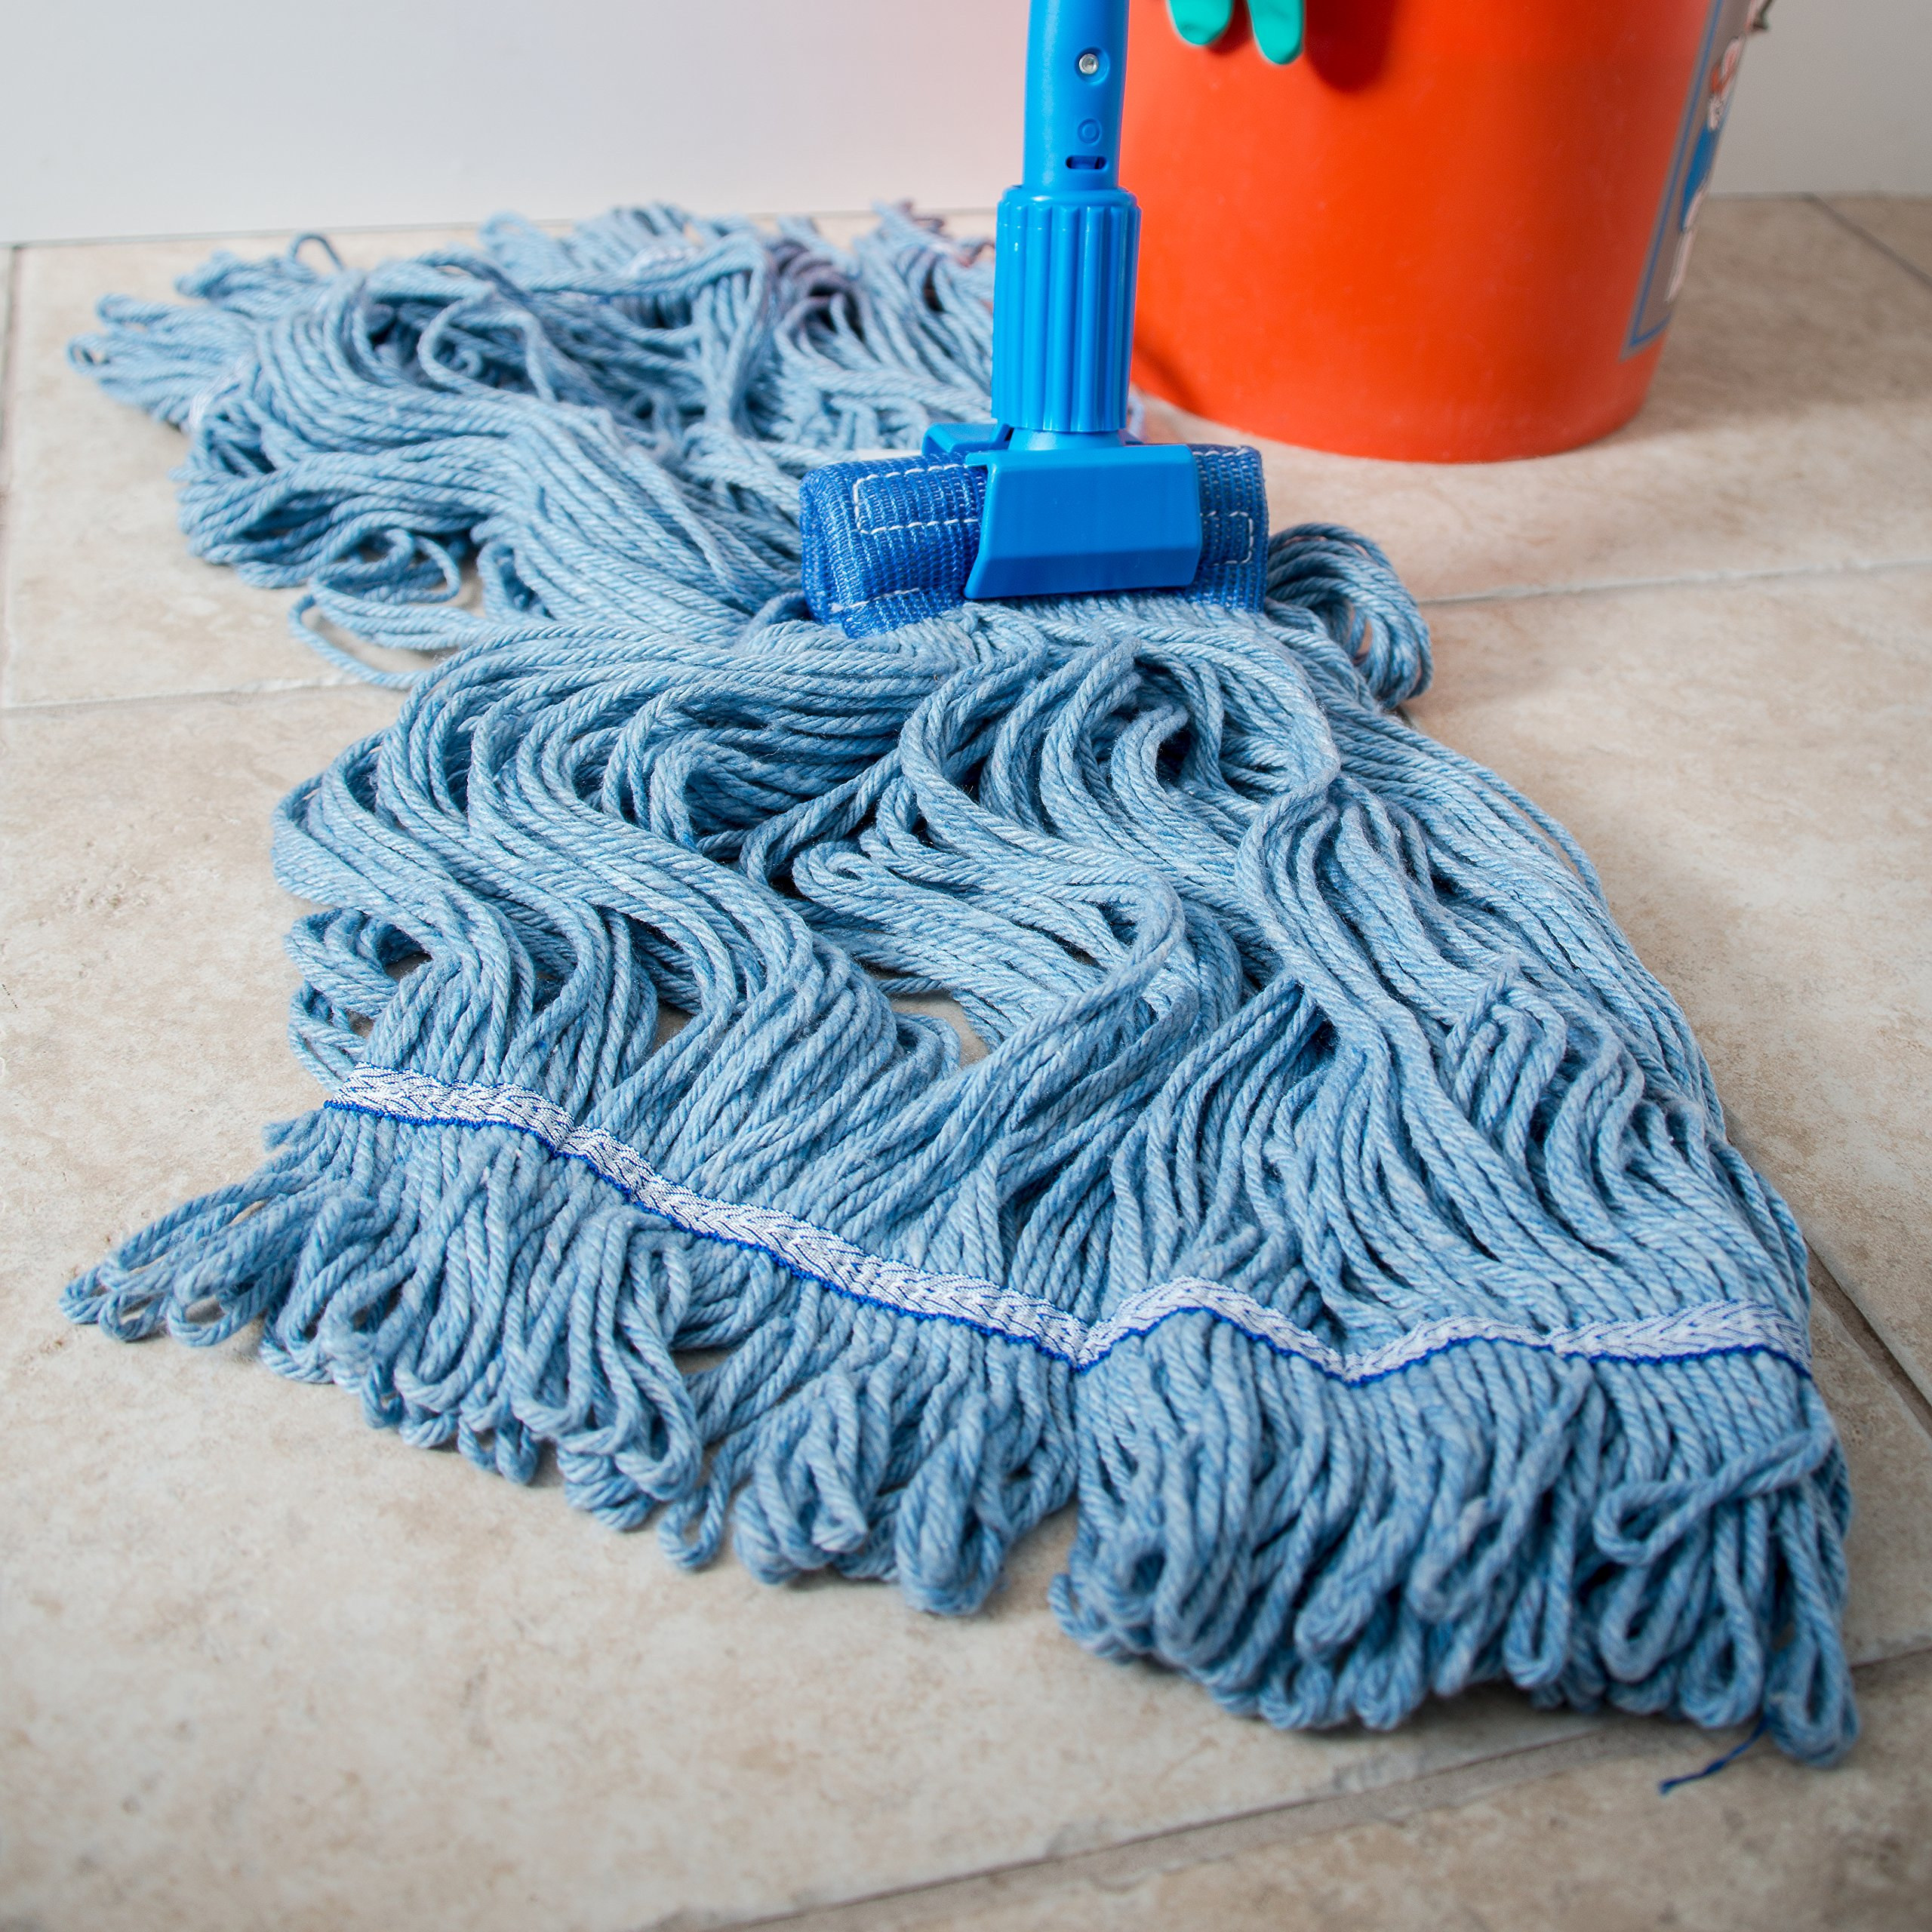 Carlisle 36946014 Looped-End Premium Mop Head With Blue Band, X-Large, Blue by Carlisle (Image #6)